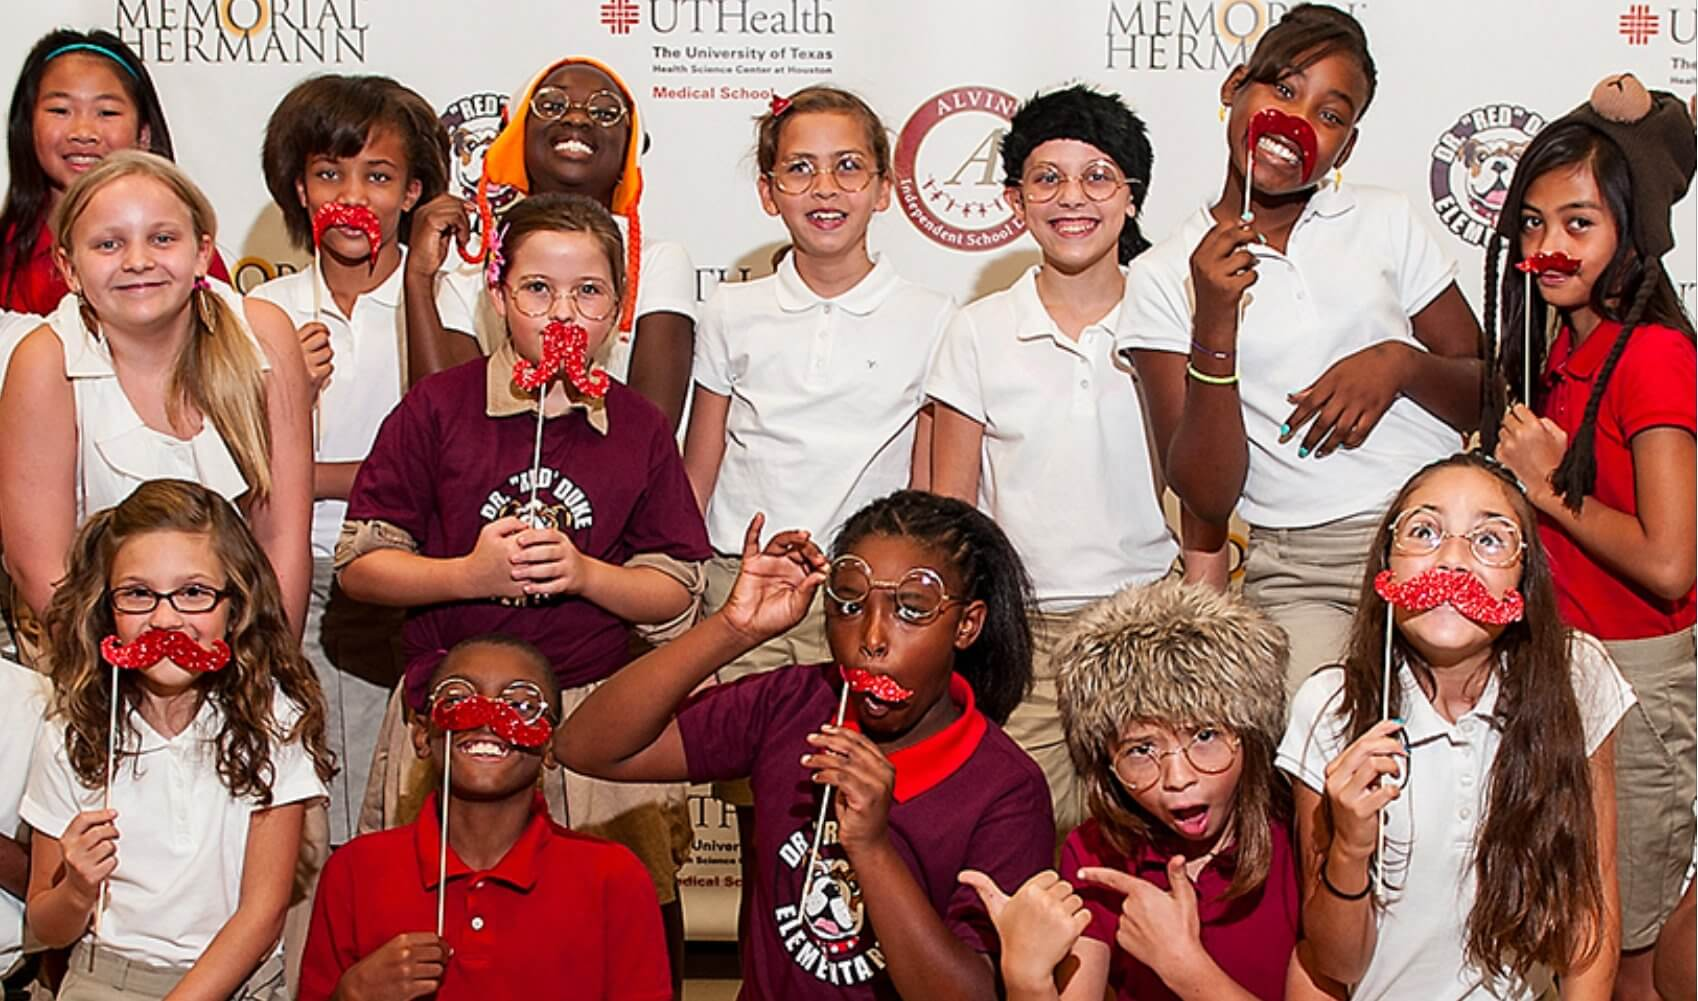 Students wear red mustaches in a playful nod to Duke (Credit: Memorial Hermann-TMC)